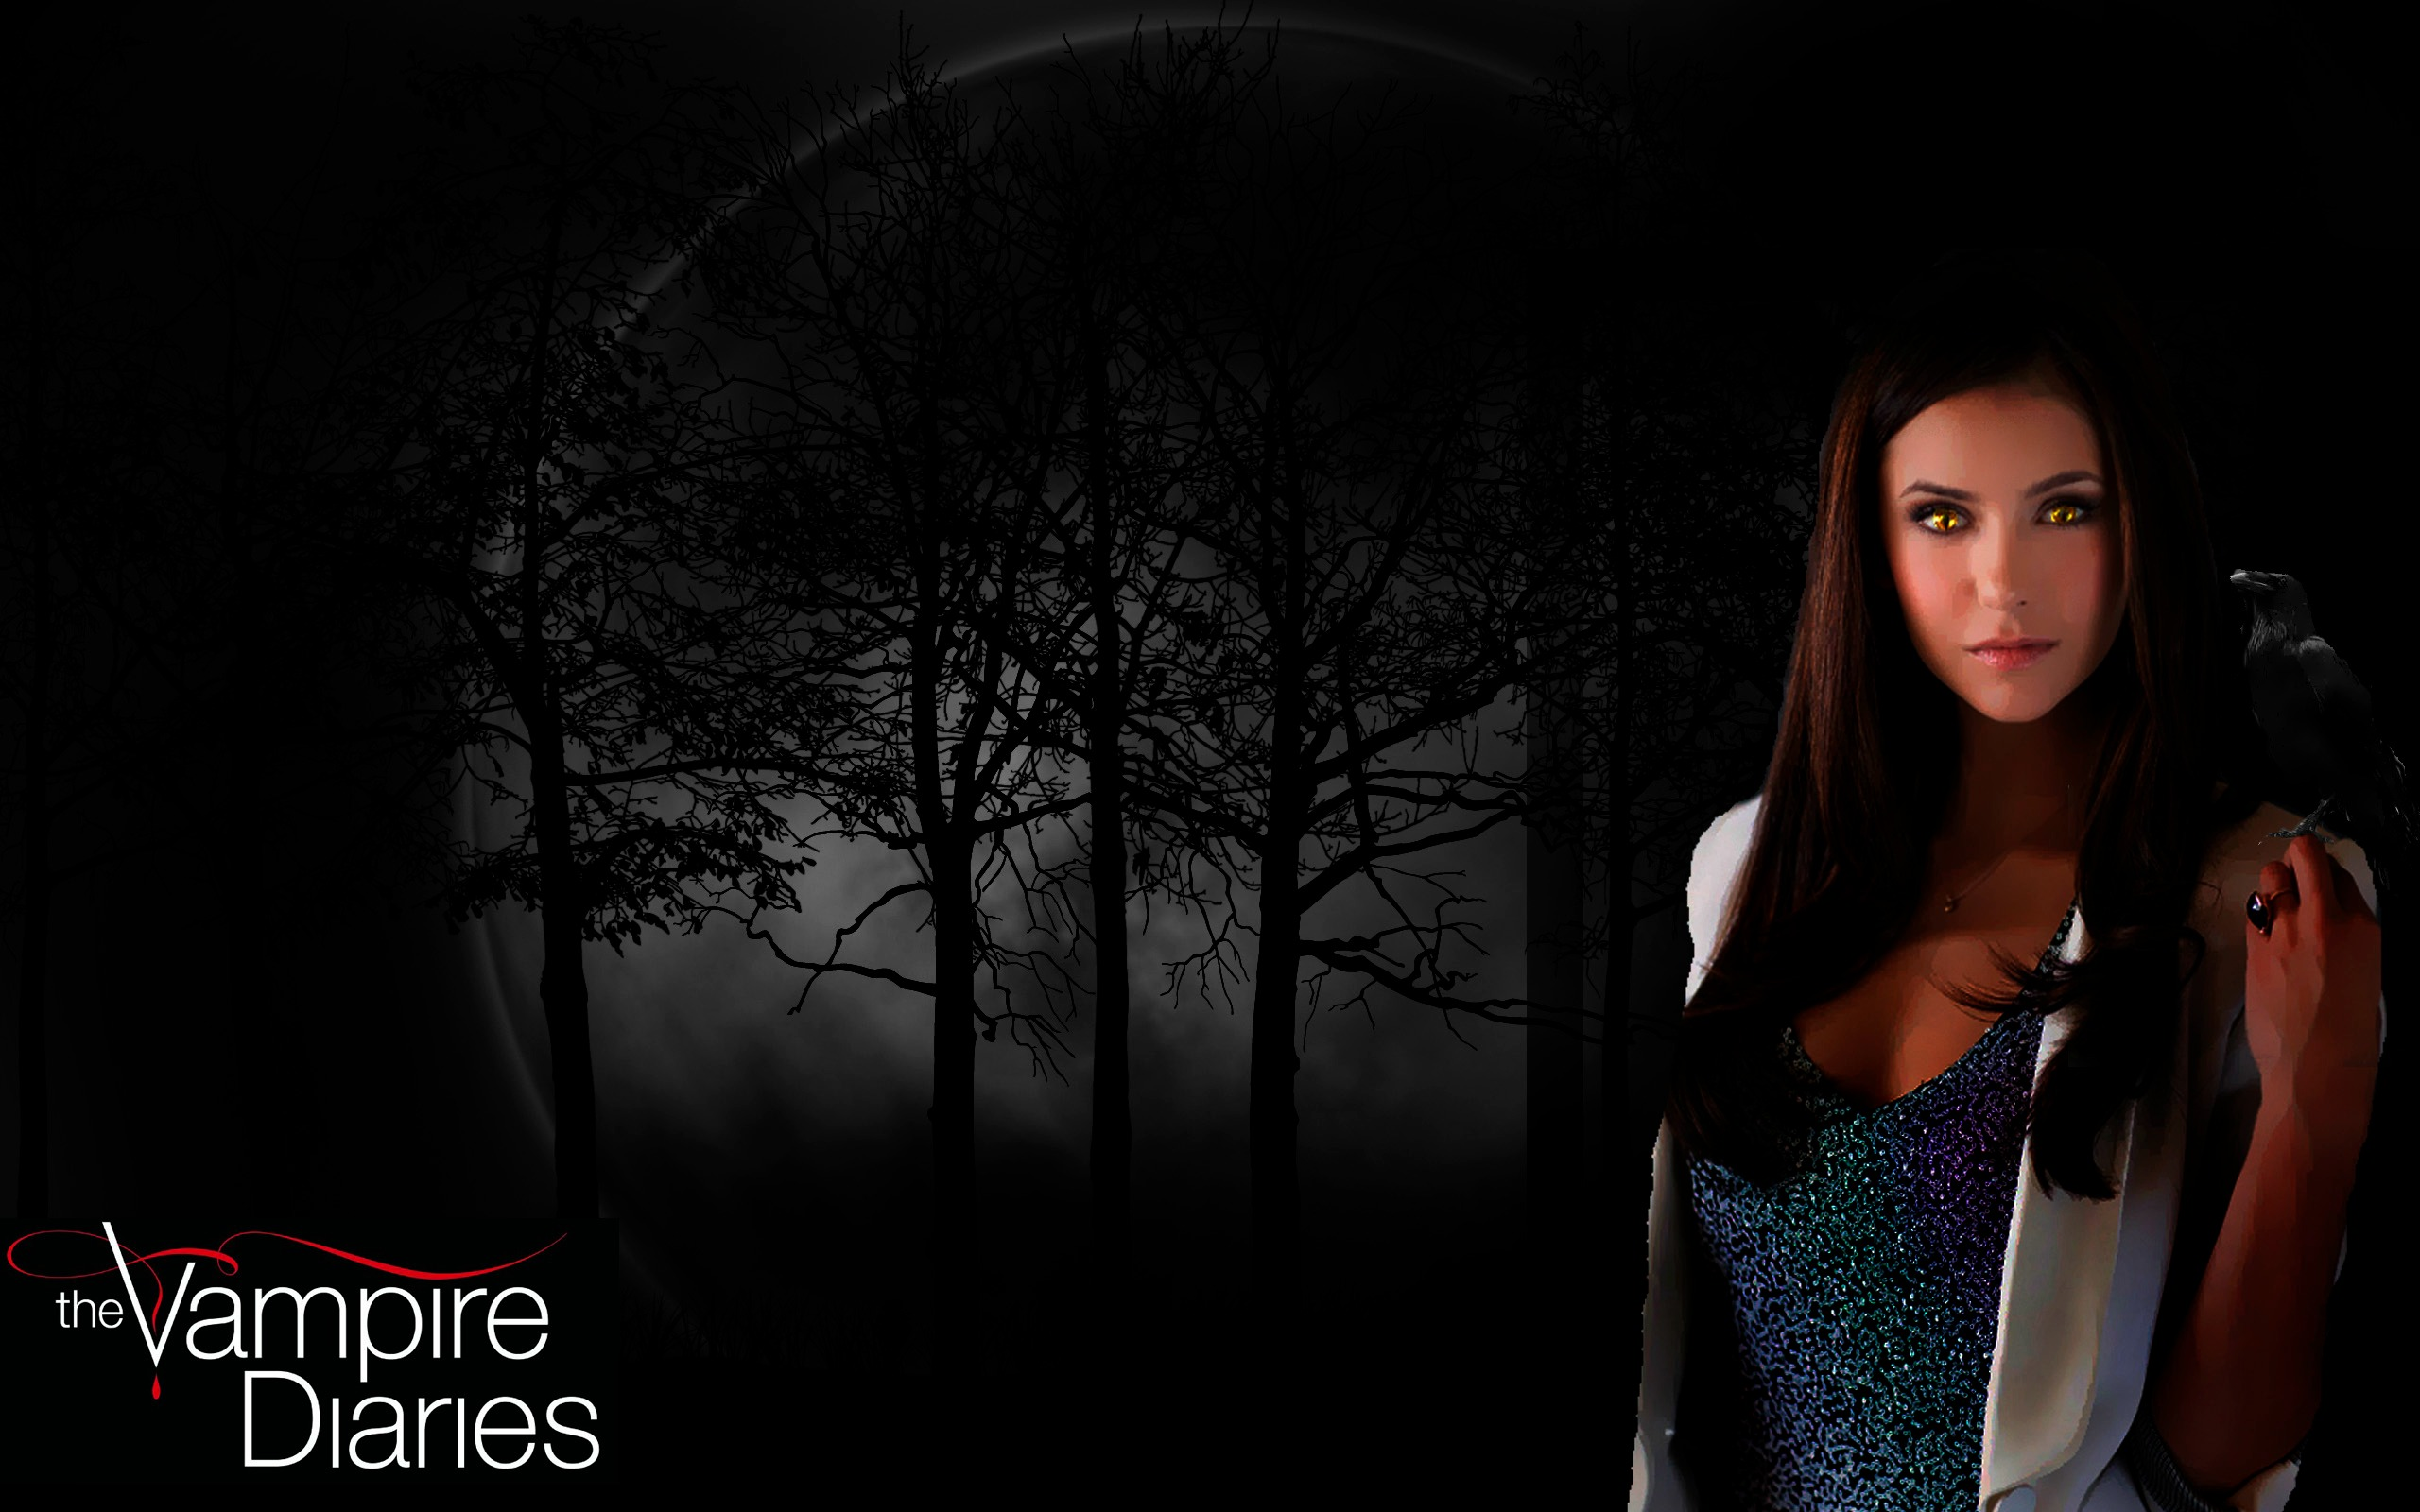 Elena Salvatore née Gilbert was the former main female protagonist of The Vampire Diaries At the beginning of the series Elena appears to be a regular human girl